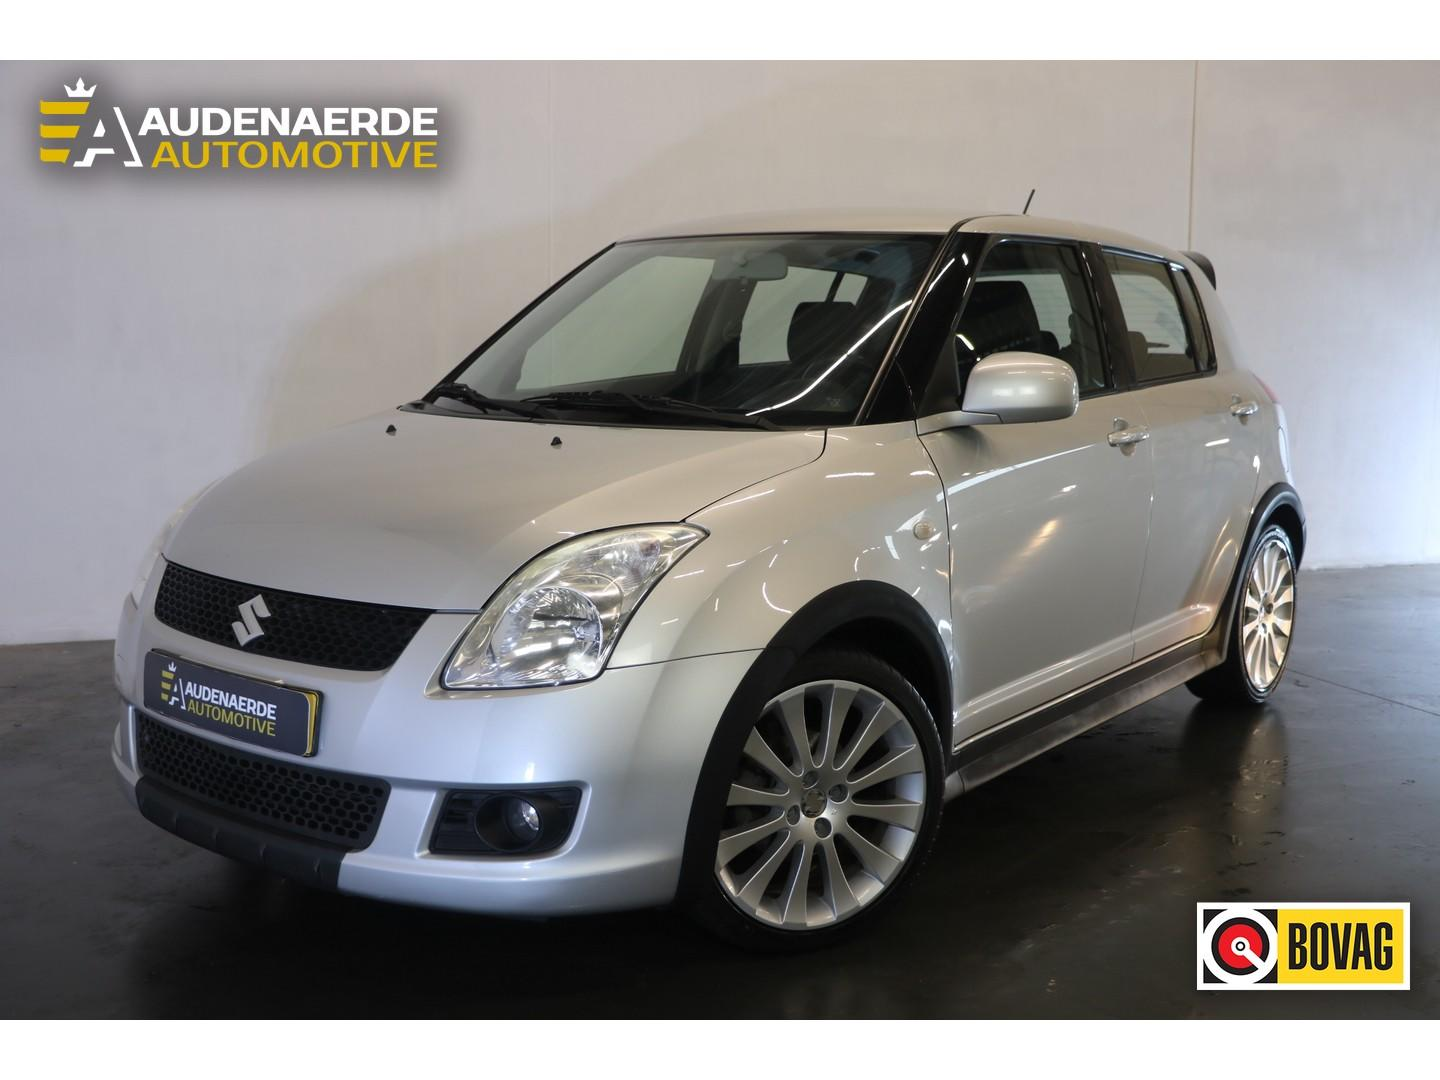 Suzuki Swift 1.3 gt+ shogun